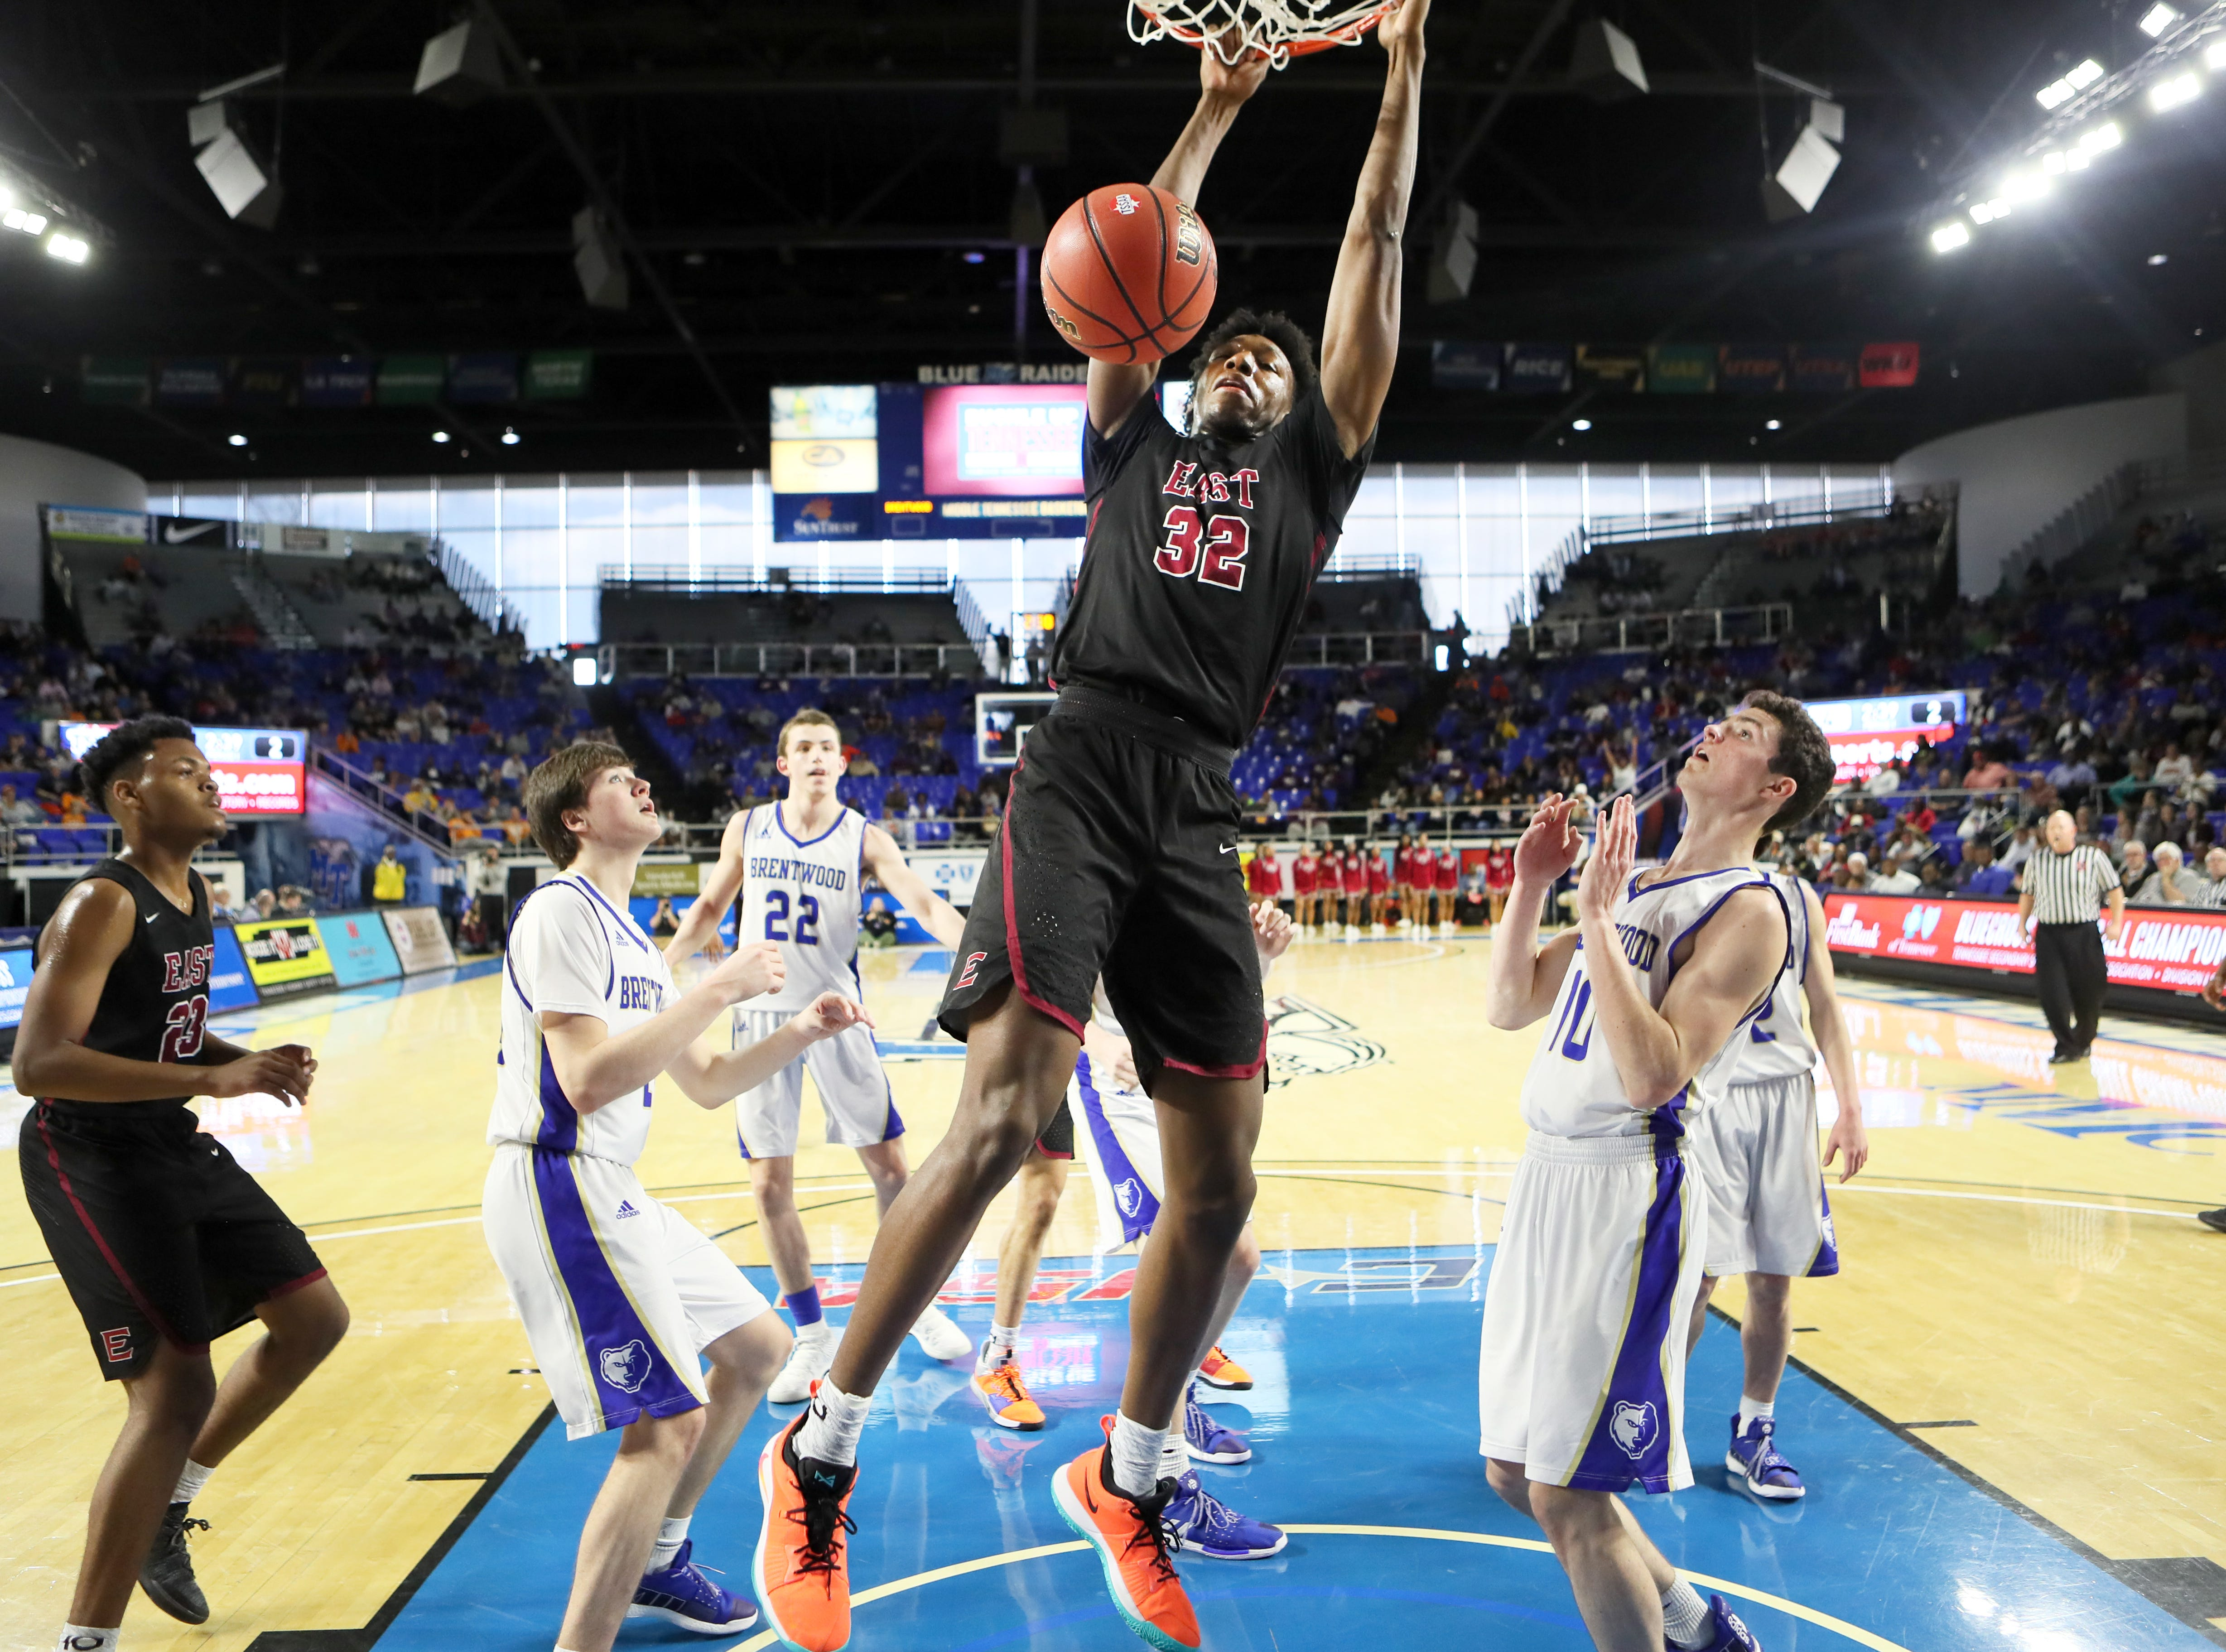 Memphis East's James Wiseman dunk the ball against Brentwood during the Class AAA boys basketball state semifinal at the Murphy Center in Murfreesboro, Tenn. on Thursday, March 14, 2019.